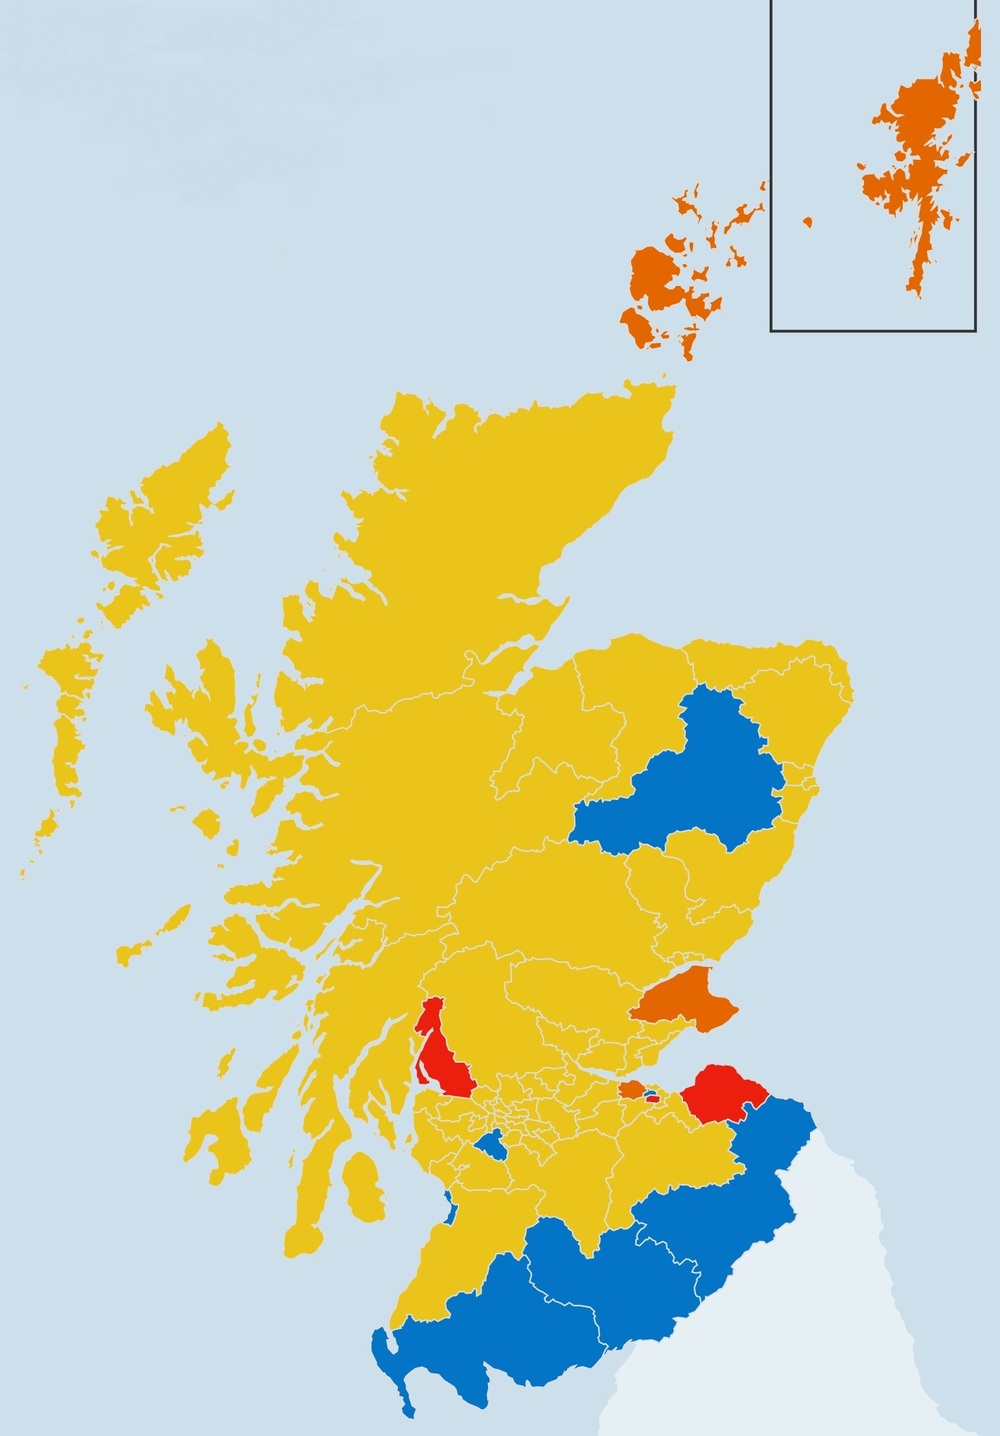 The new constituency map is vastly more colorful than most projections had shown going into election day on May 5th. Image Source: BBC